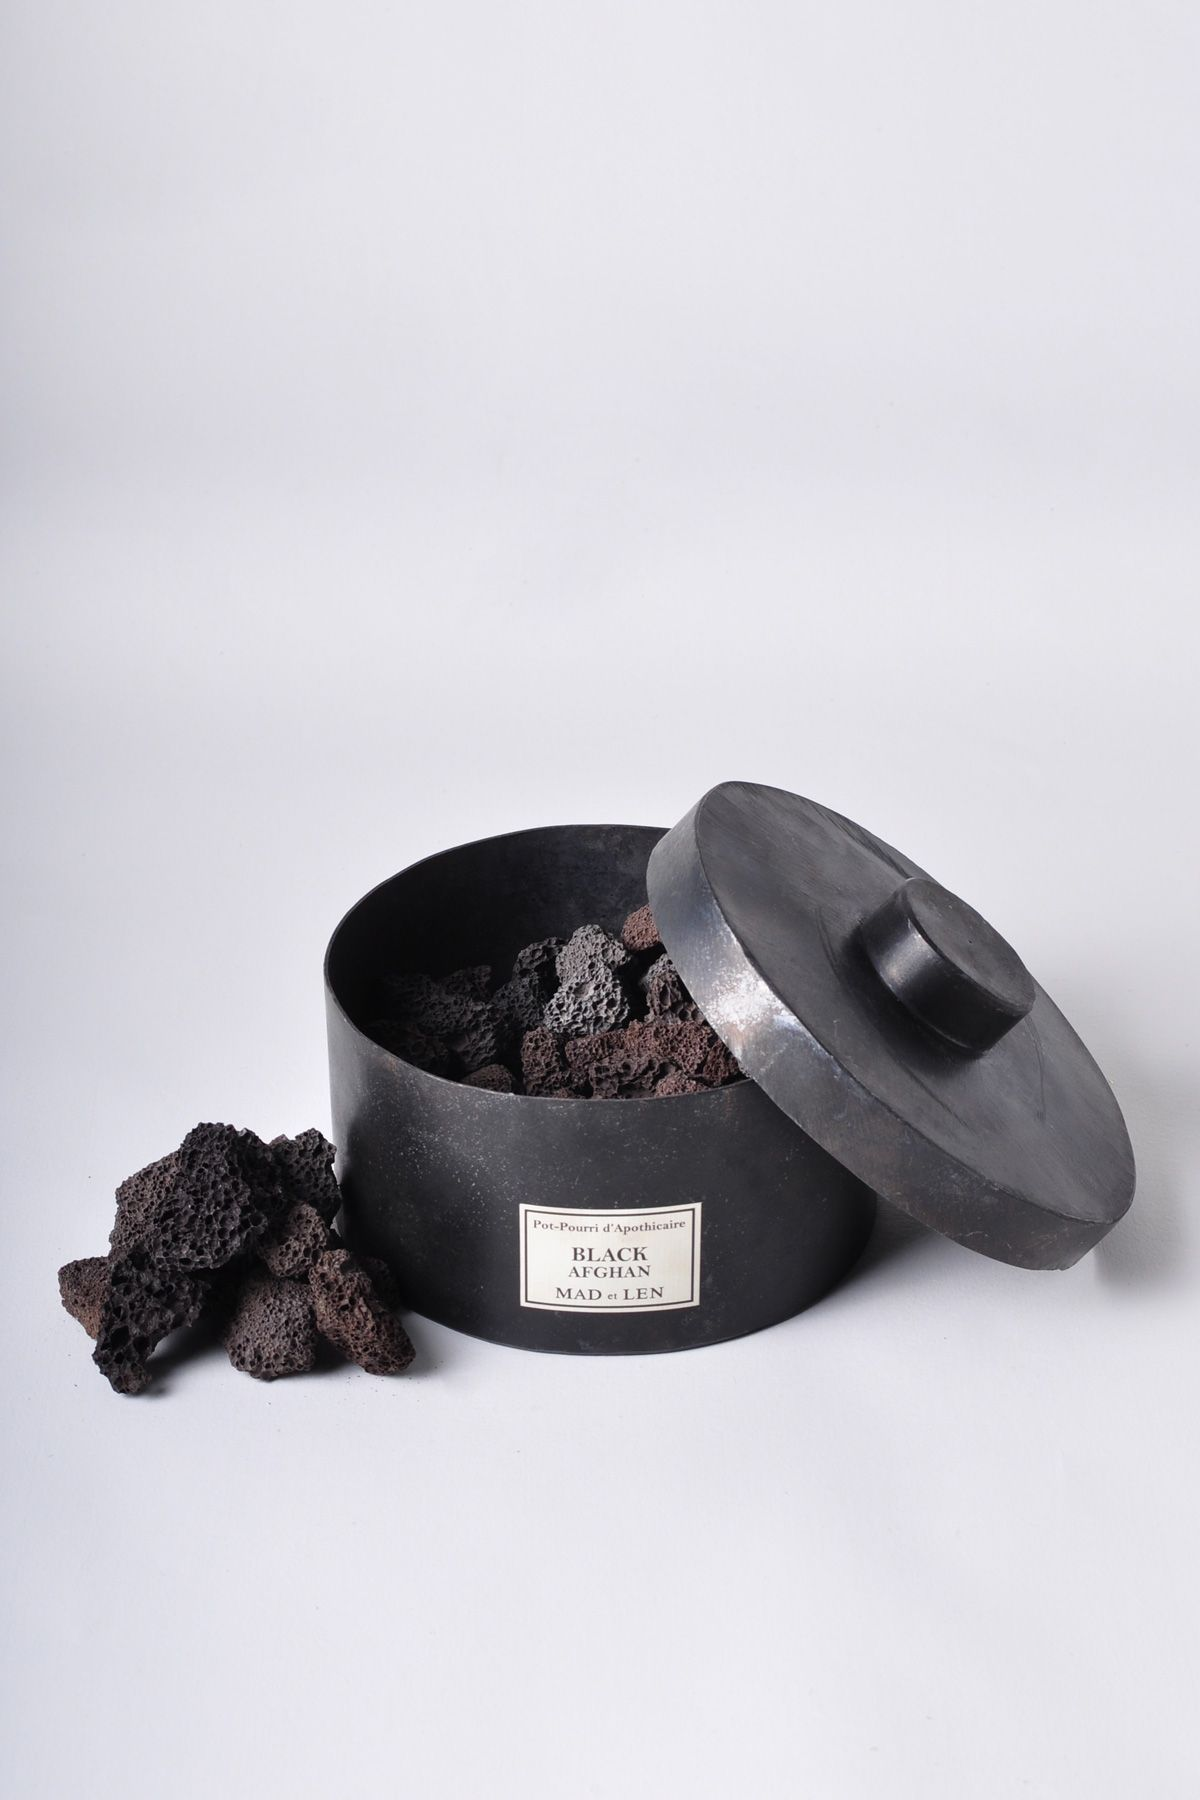 Black Afghan Potpourri From The French Mad Et Len Aromatherapy